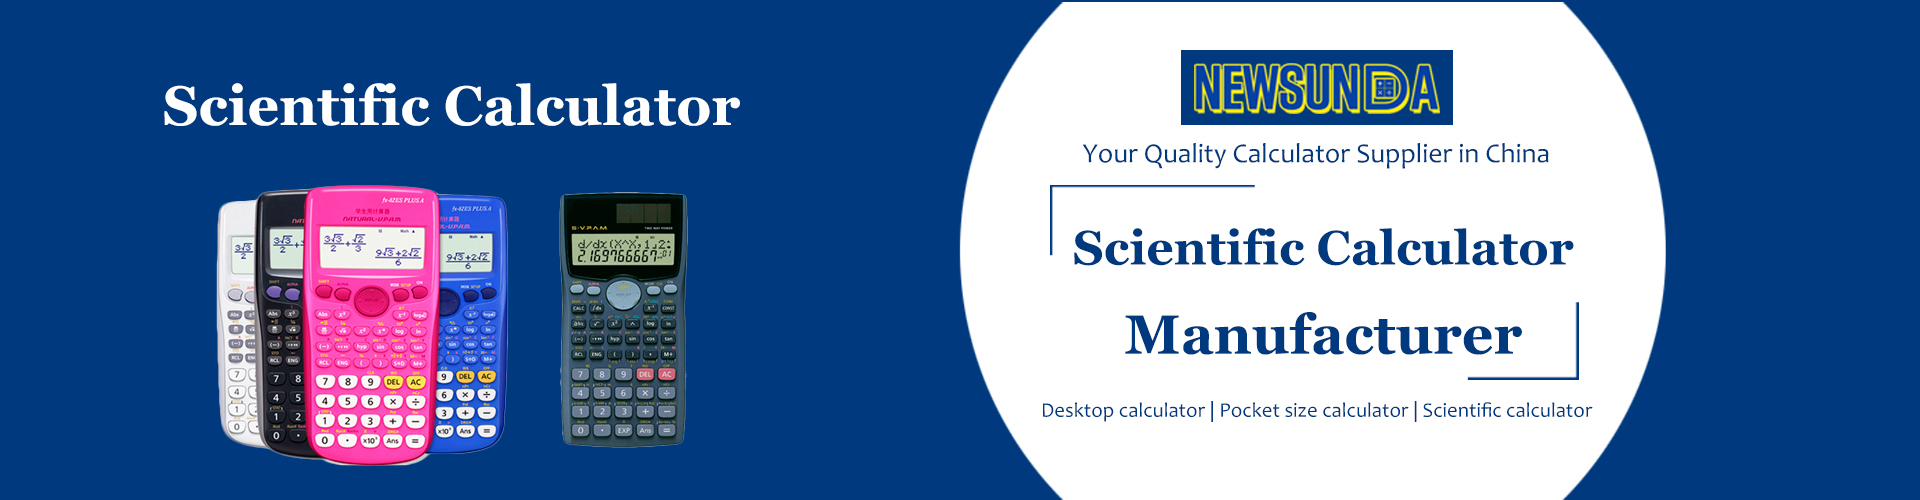 Scientific-Calculator-Banner